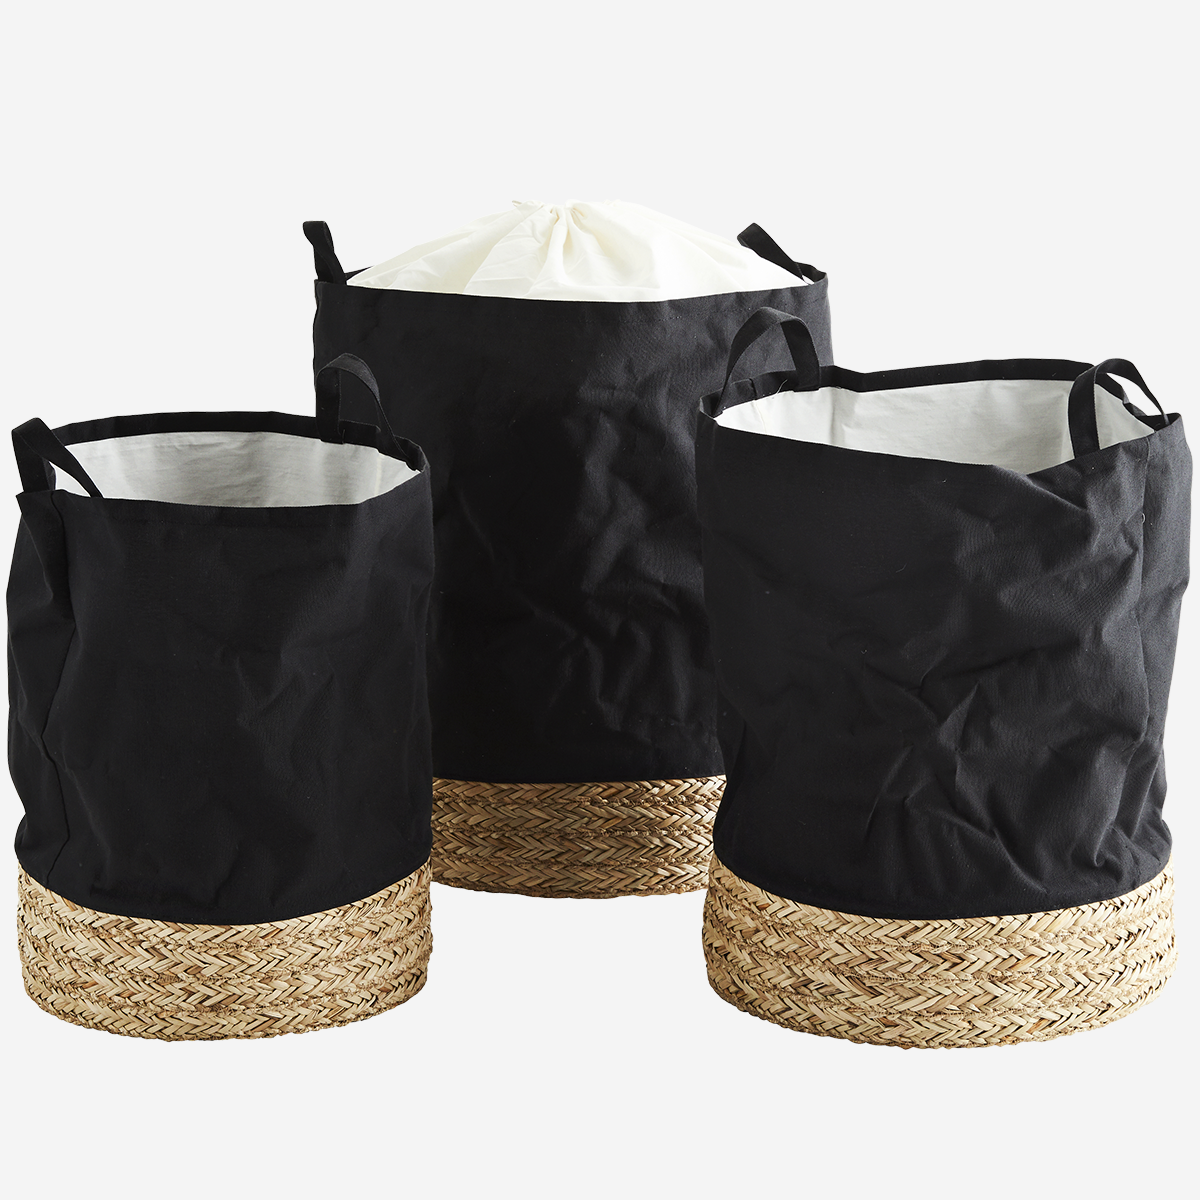 Fabric hampers w/ straw base